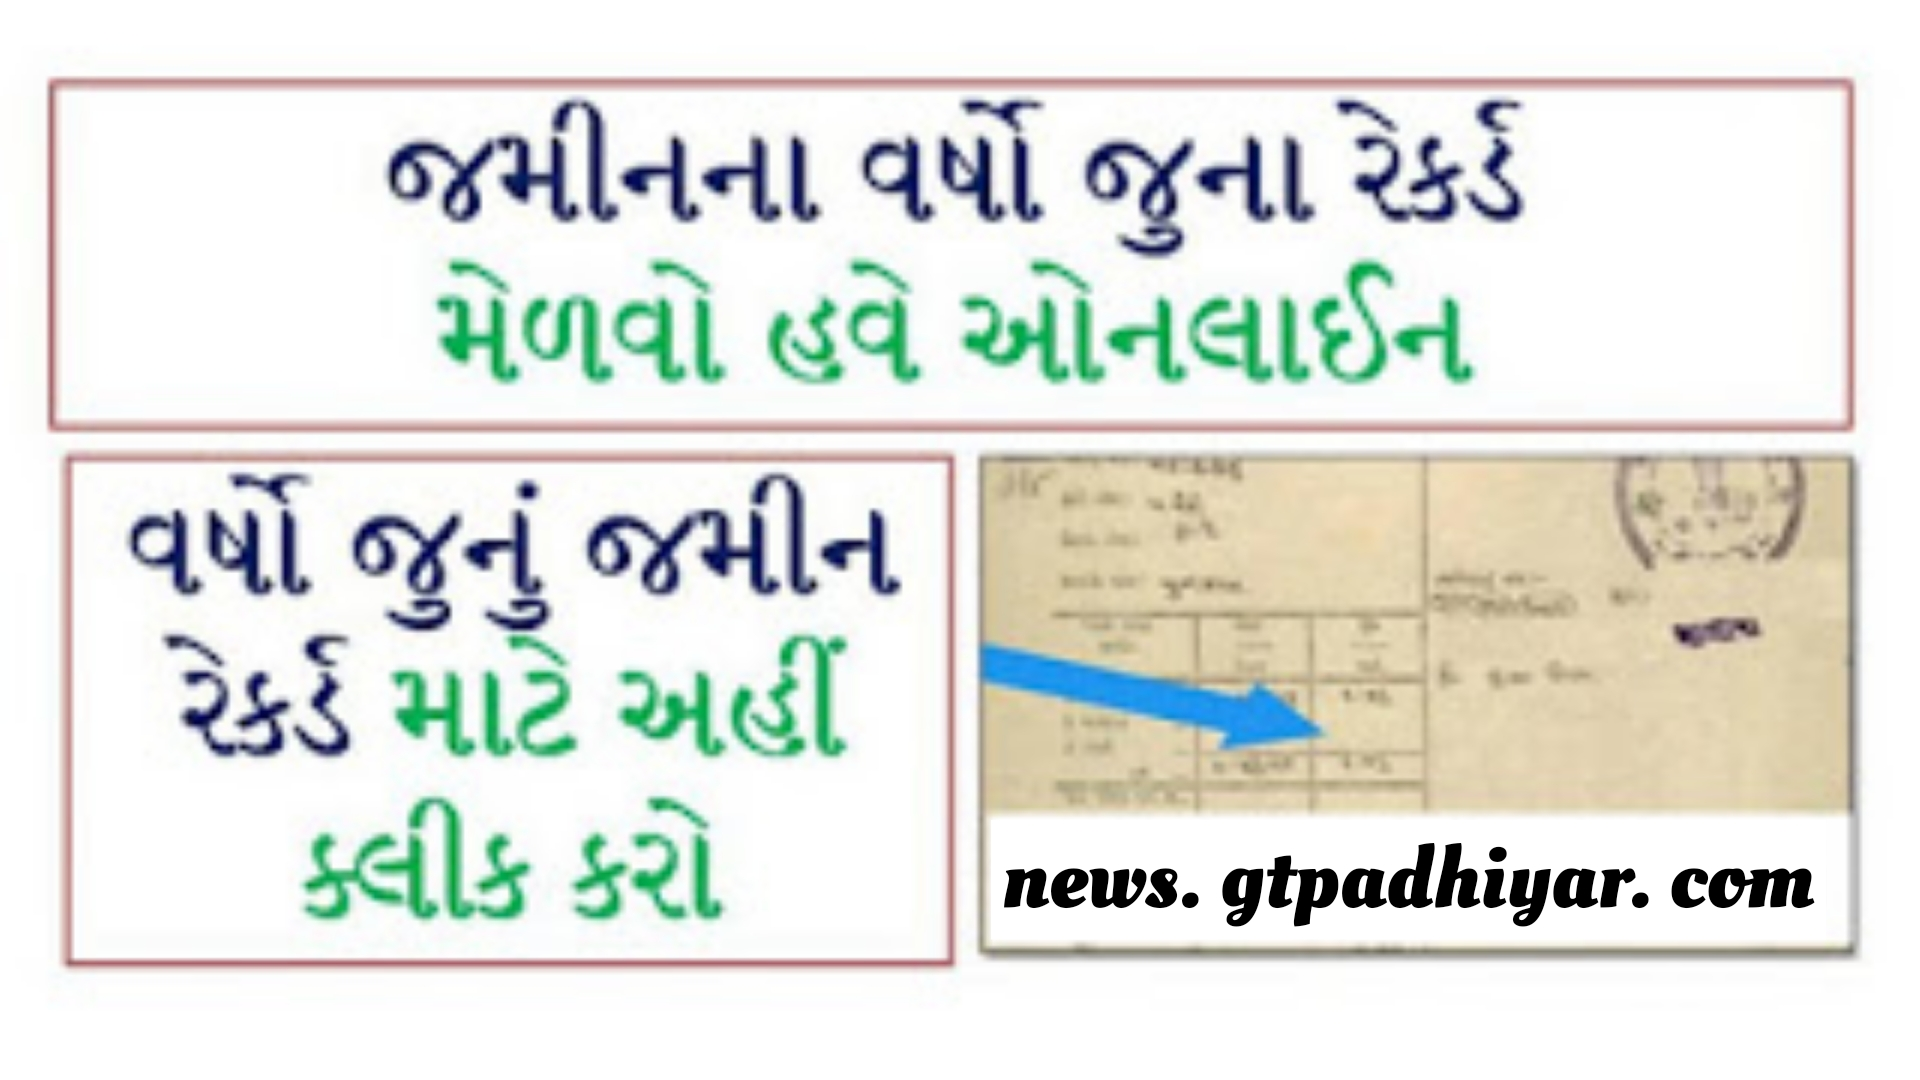 Get the land records - Record of Rights-RoR online for all cities and villages of Gujarat